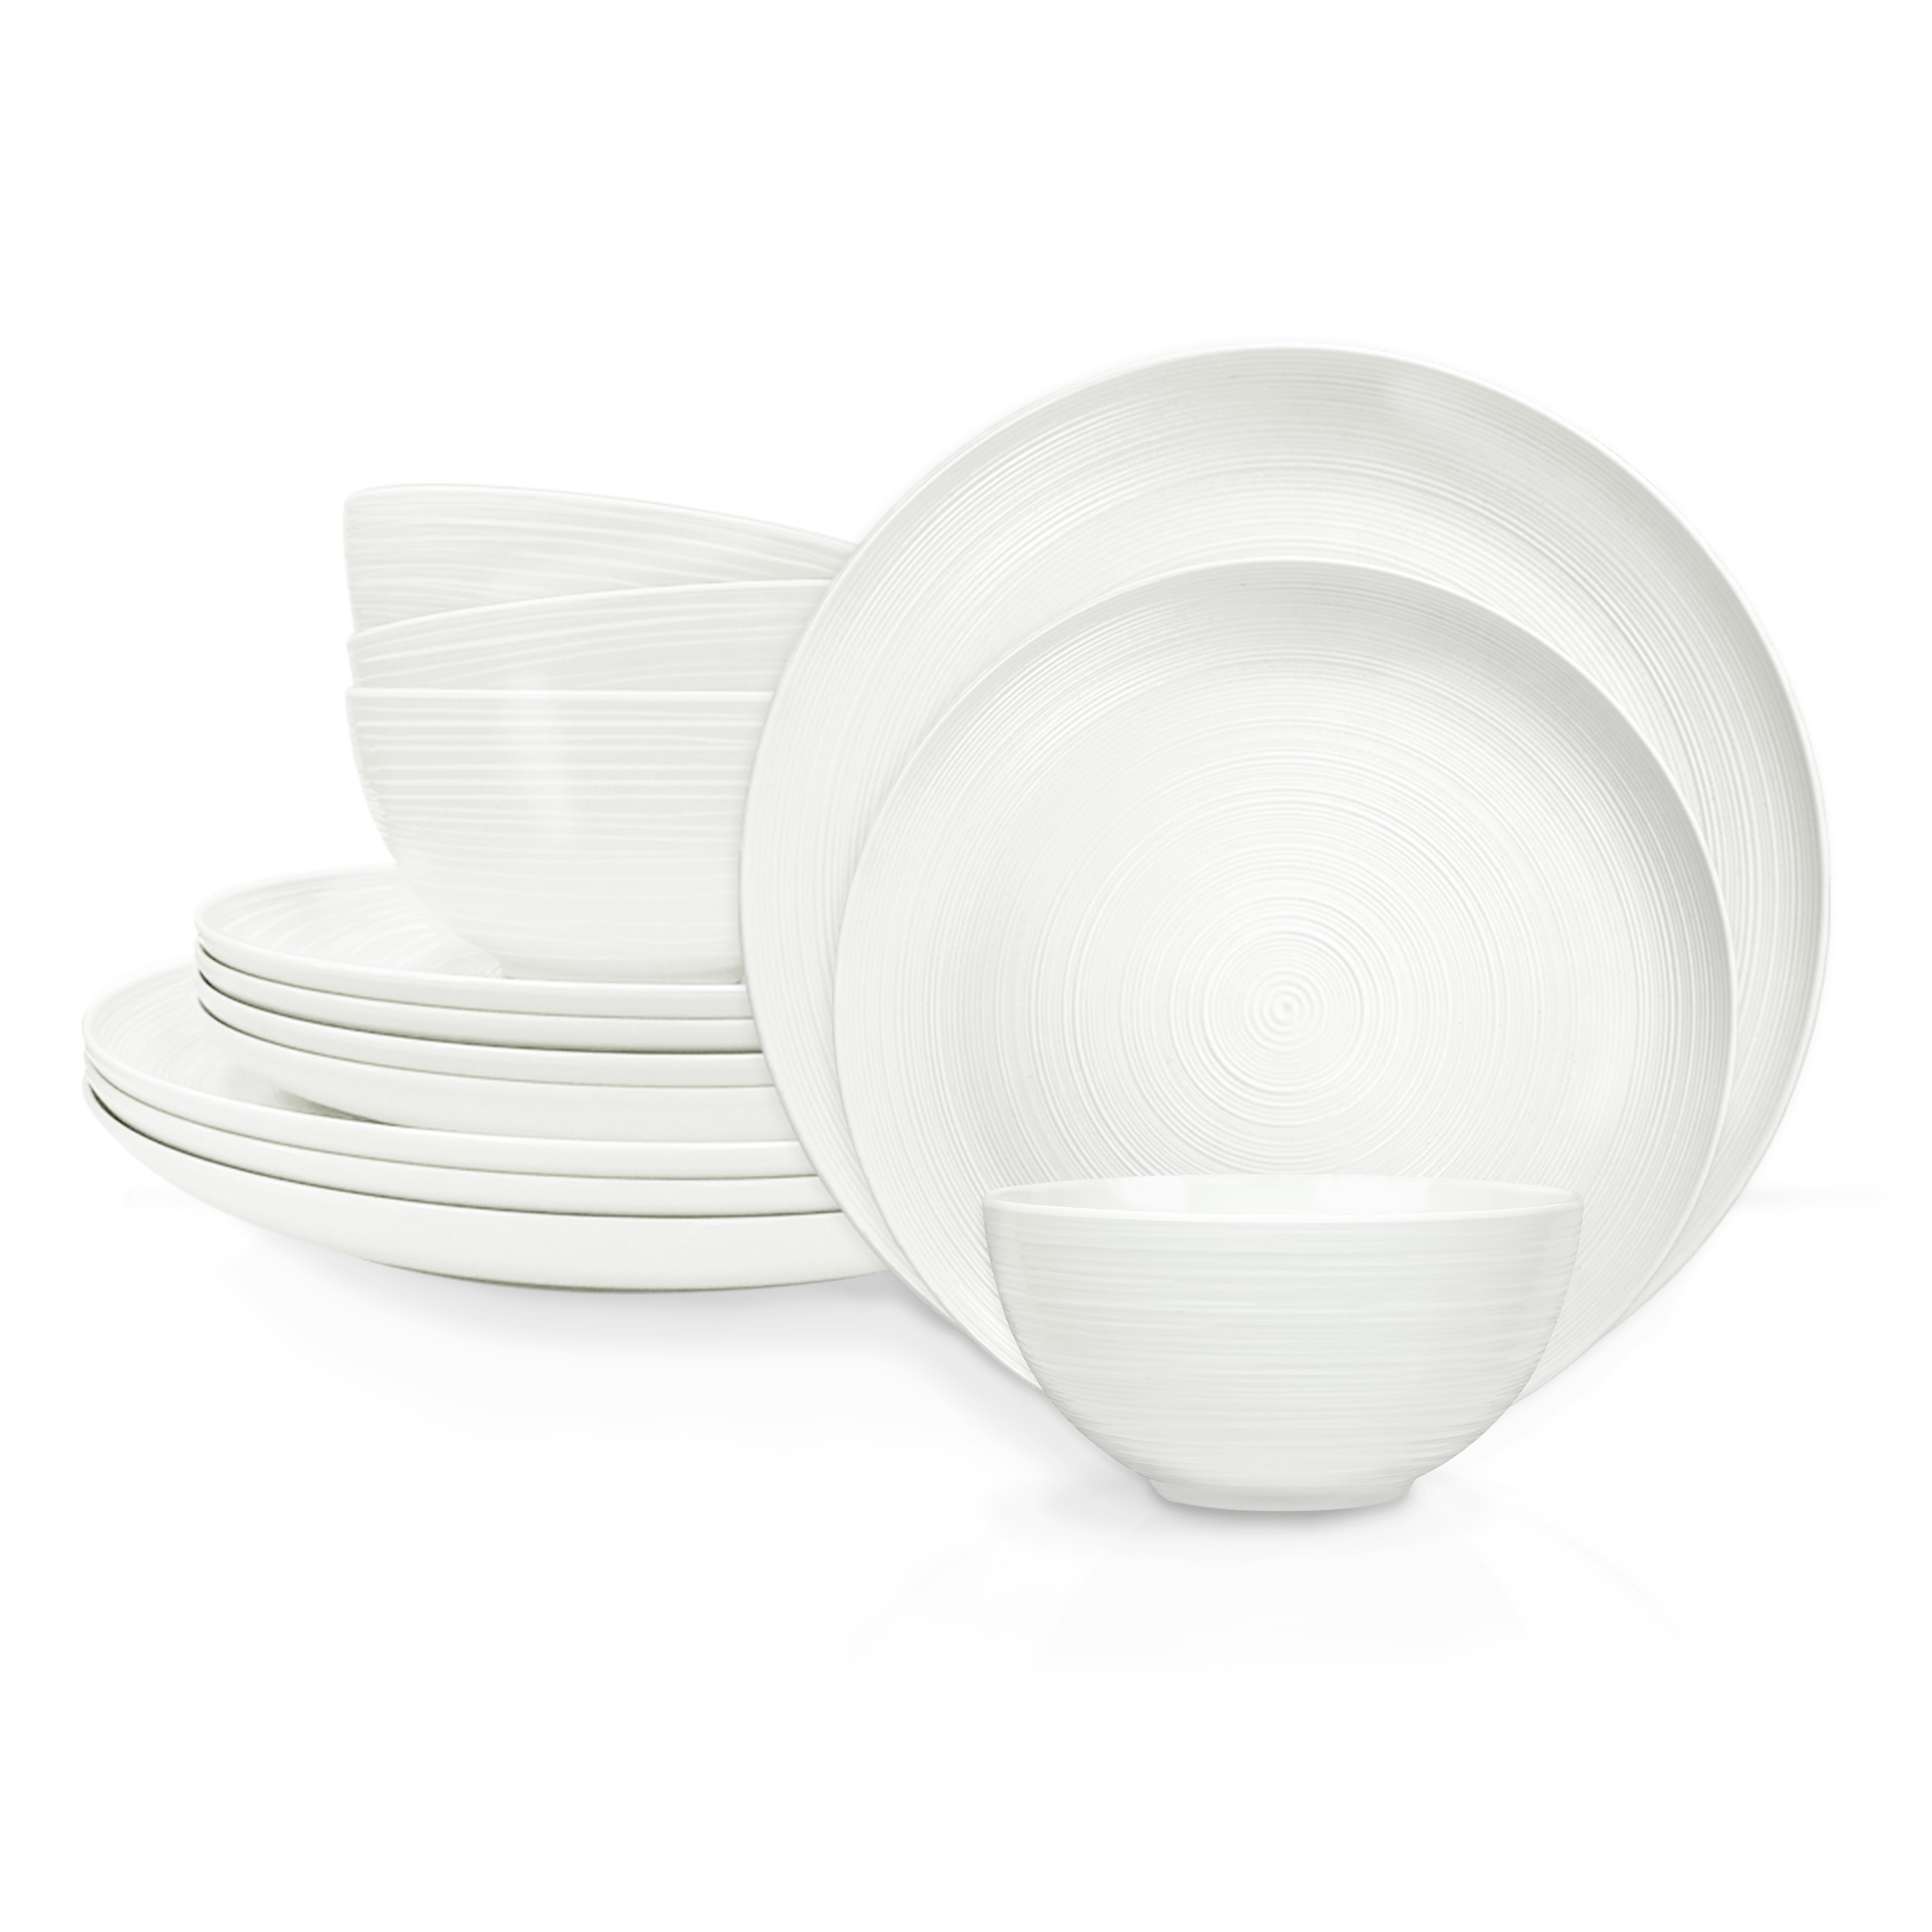 American Conventional Plate & Bowl Sets, White, 12-piece set slideshow image 2